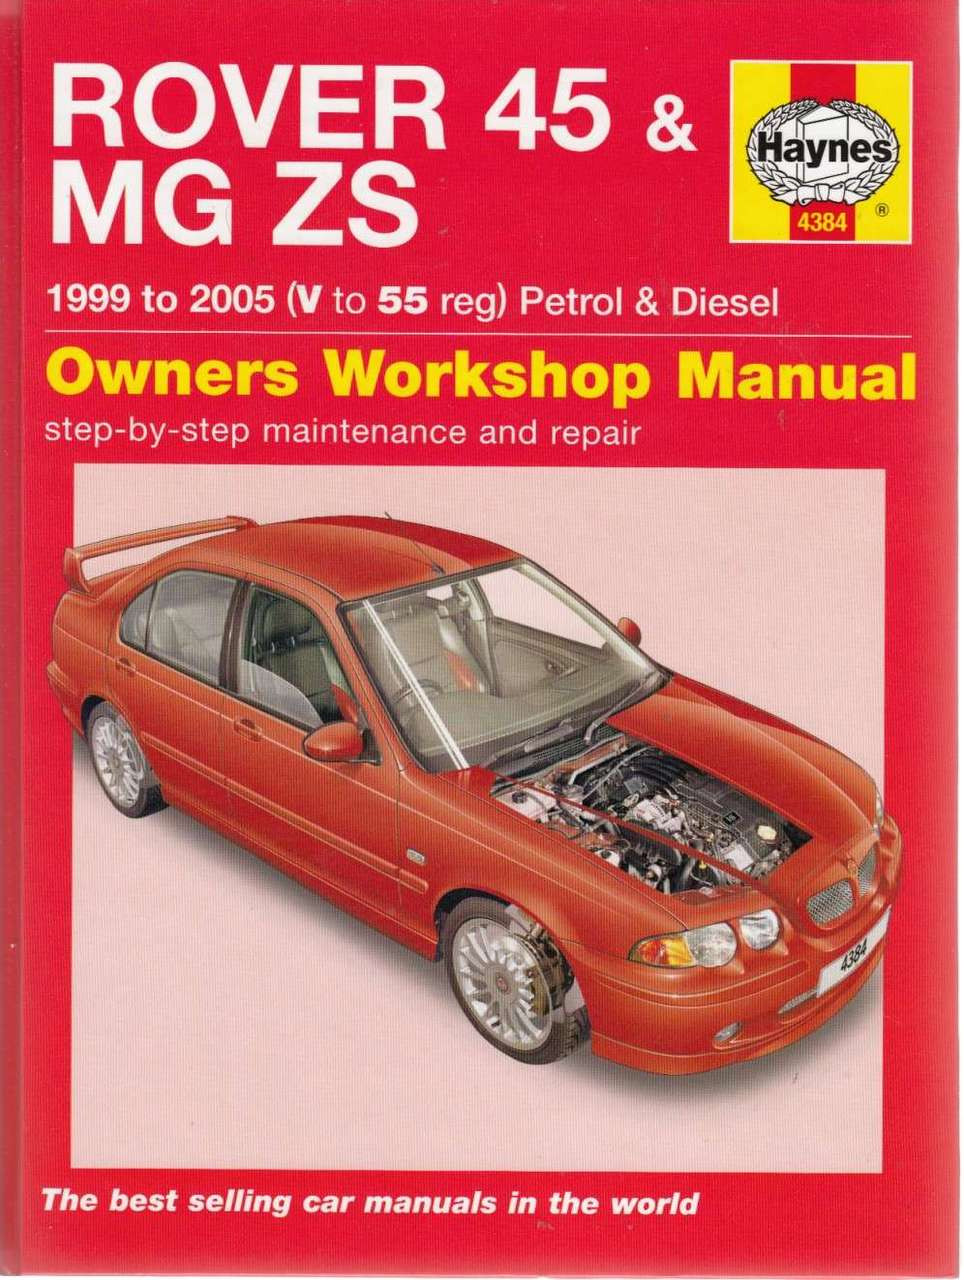 Rover 45 Mg Zs Petrol Diesel 1999 2005 Workshop Manual 820 Wiring Diagram Repair